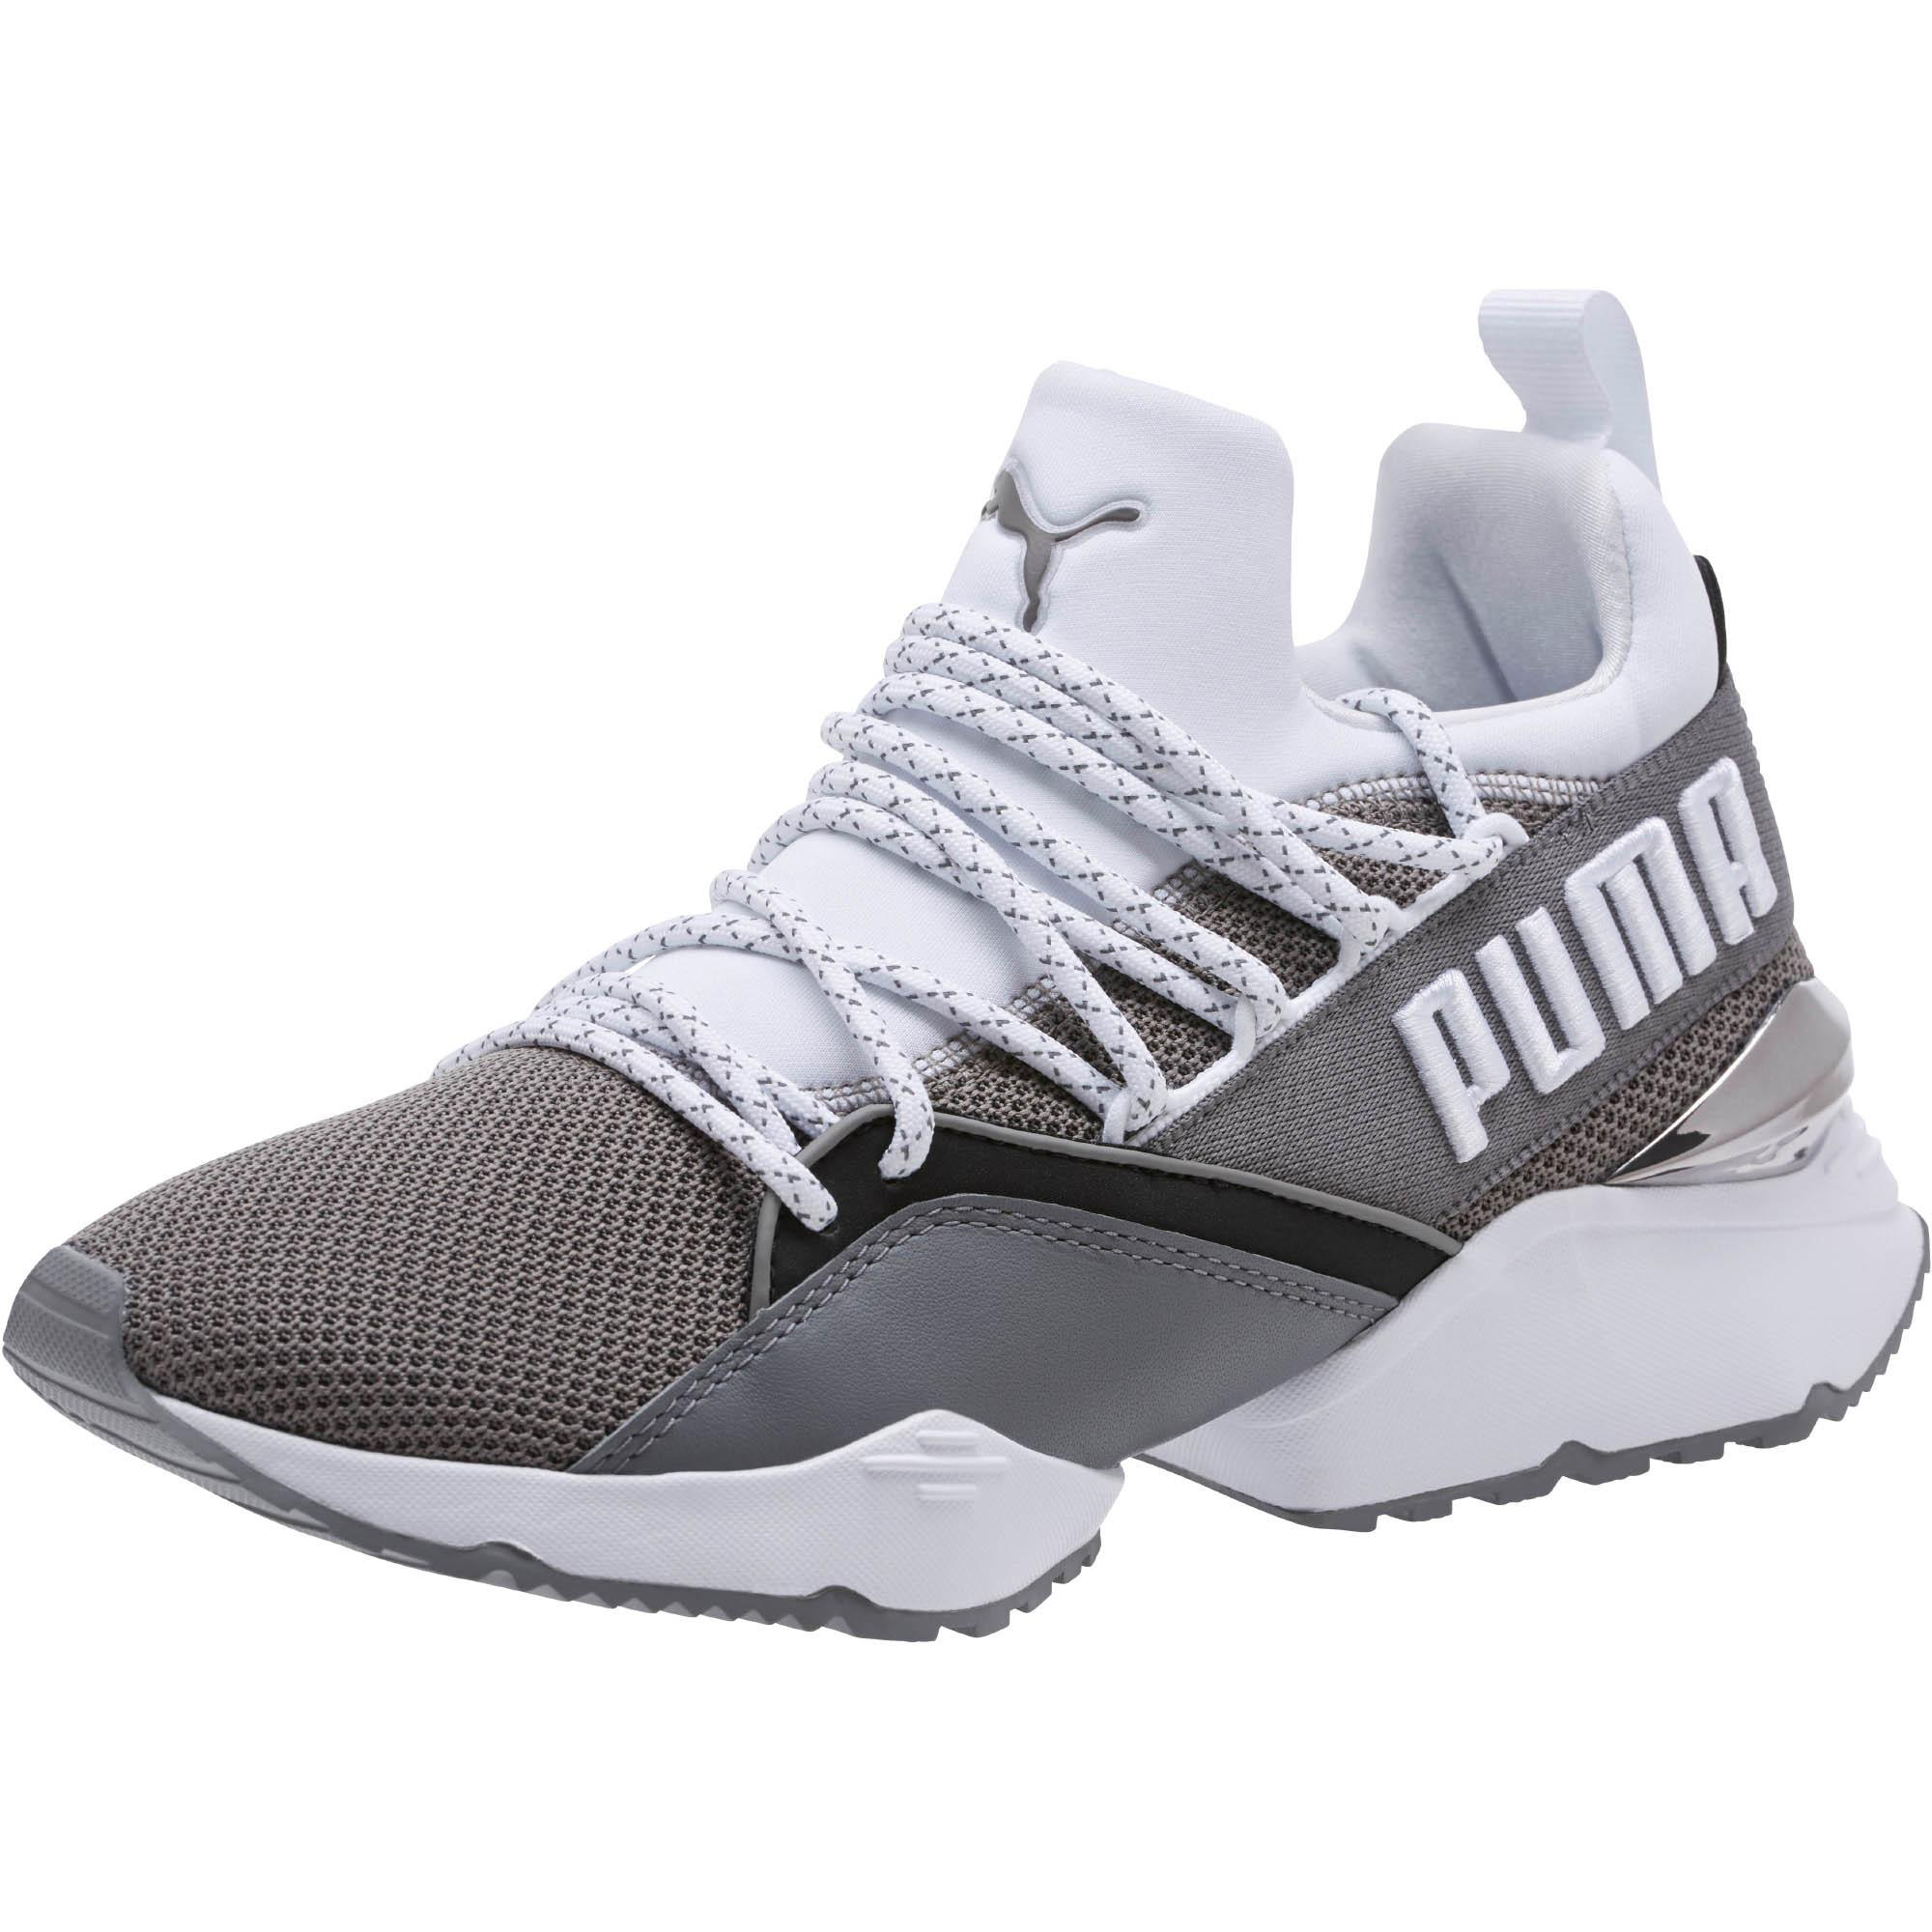 PUMA Muse Maia Smet in Gray - Lyst